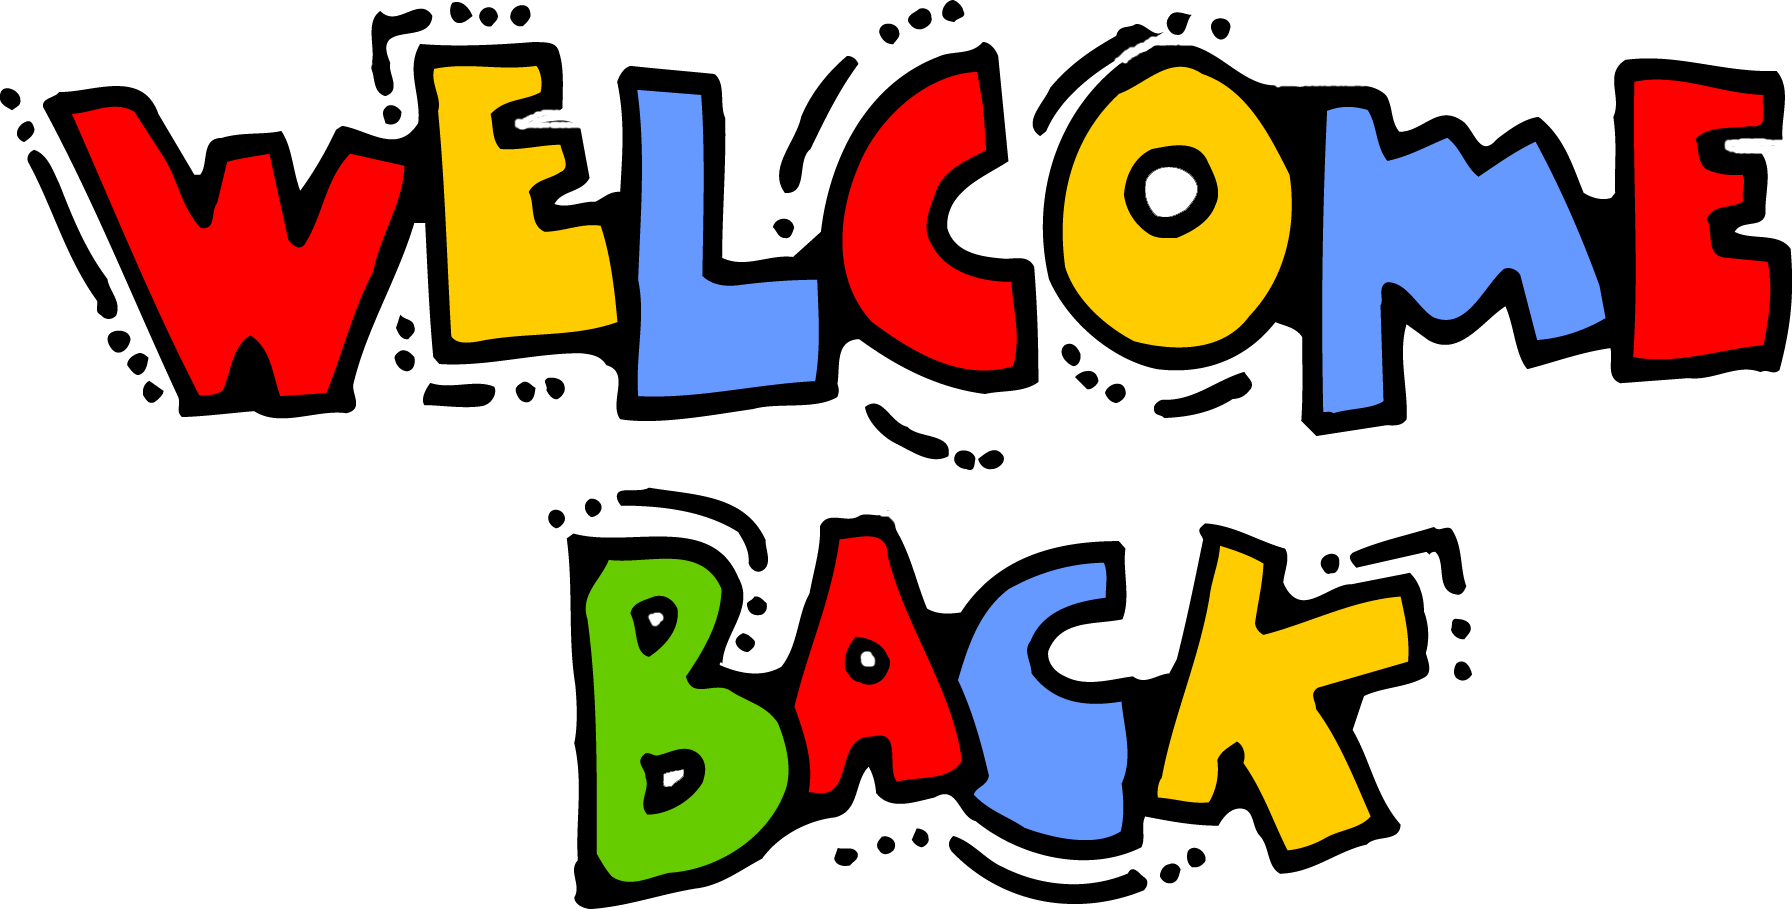 welcome back clipart transparent background